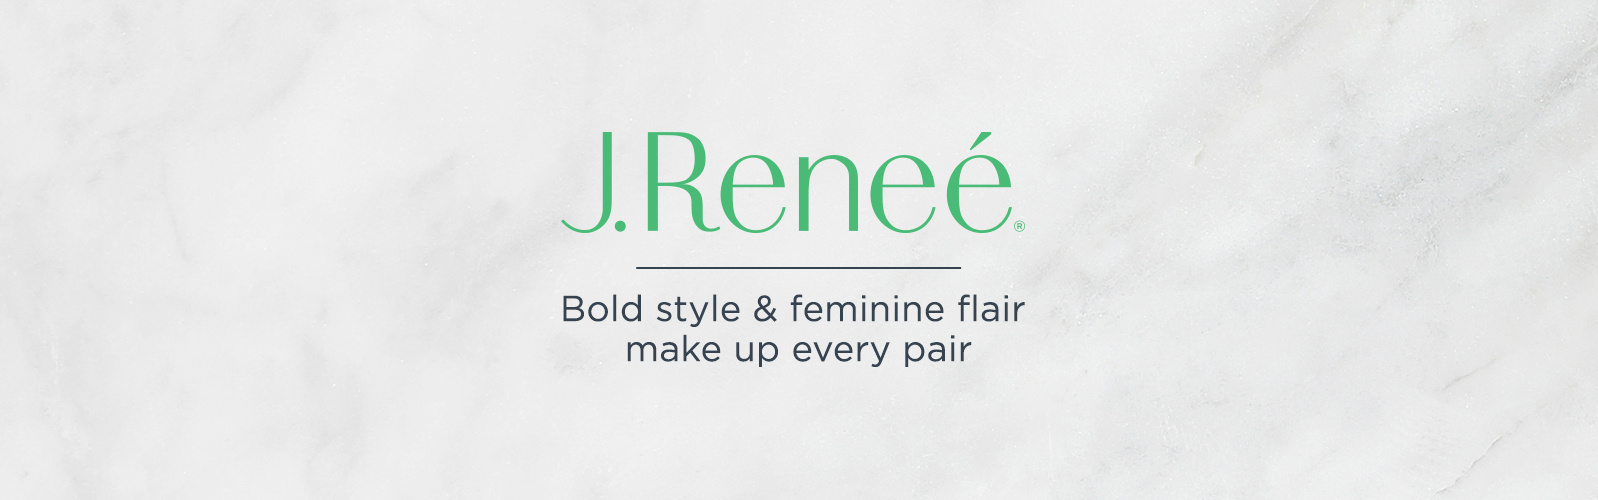 J. Renee — Bold style & feminine flair make up every pair